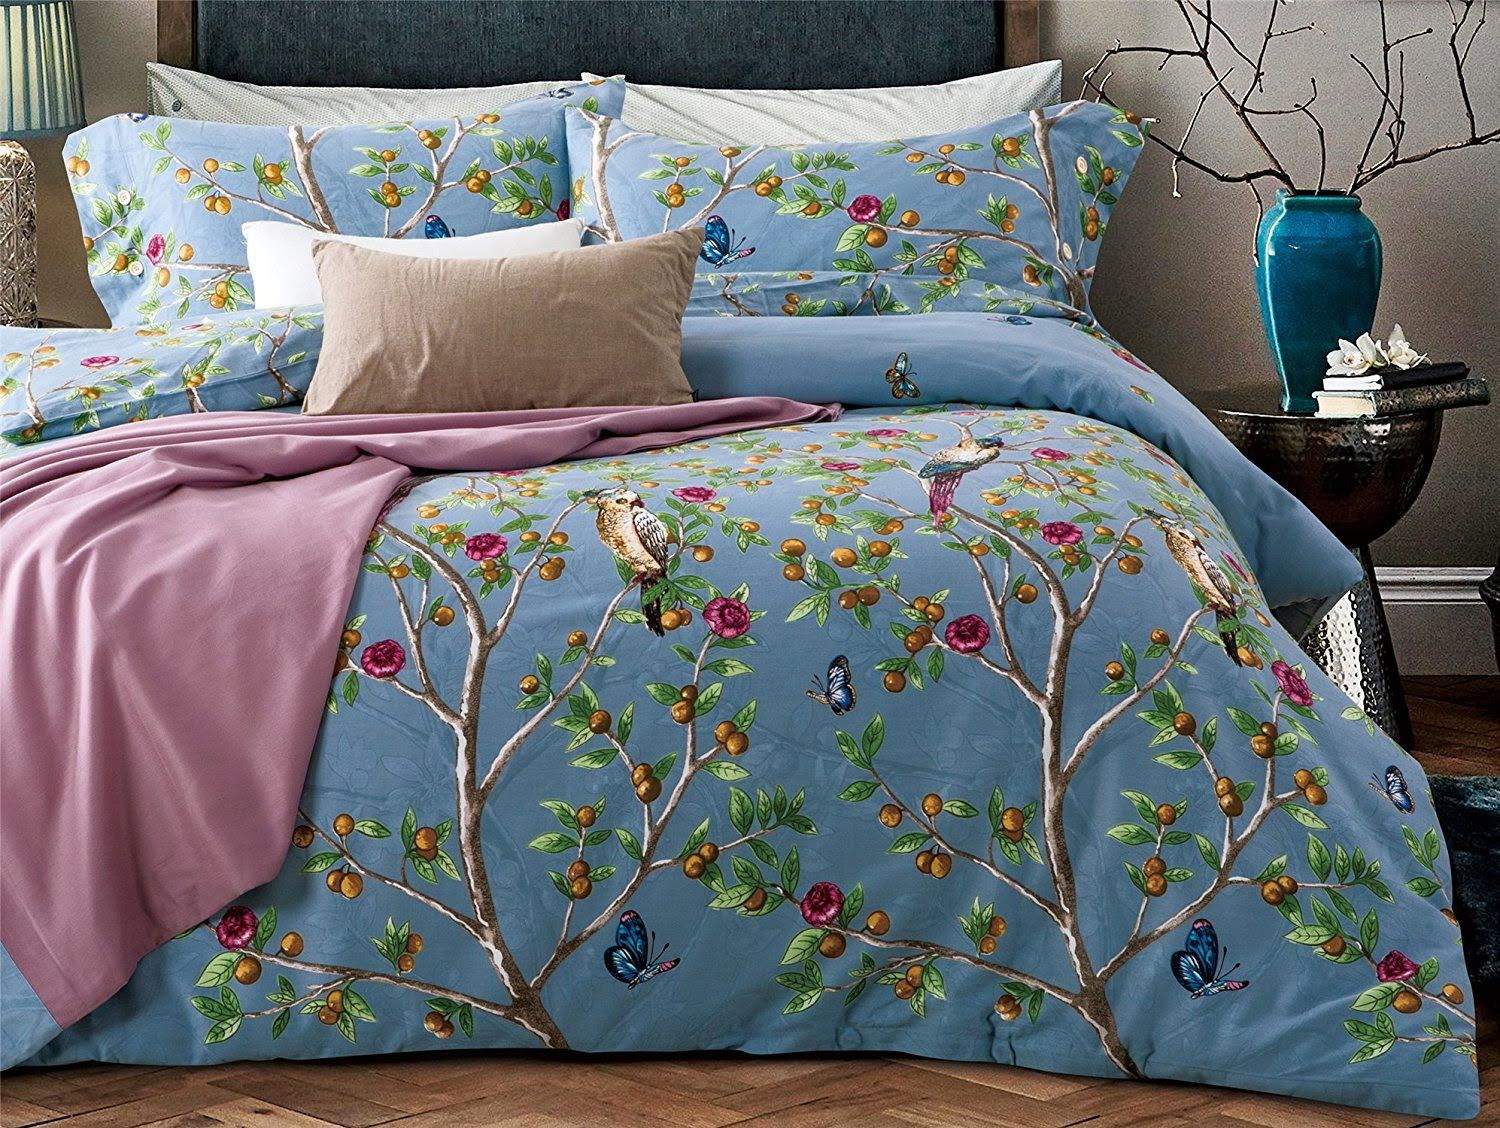 Paradise Fruit Garden With Birds Duvet Cover Set Eikei